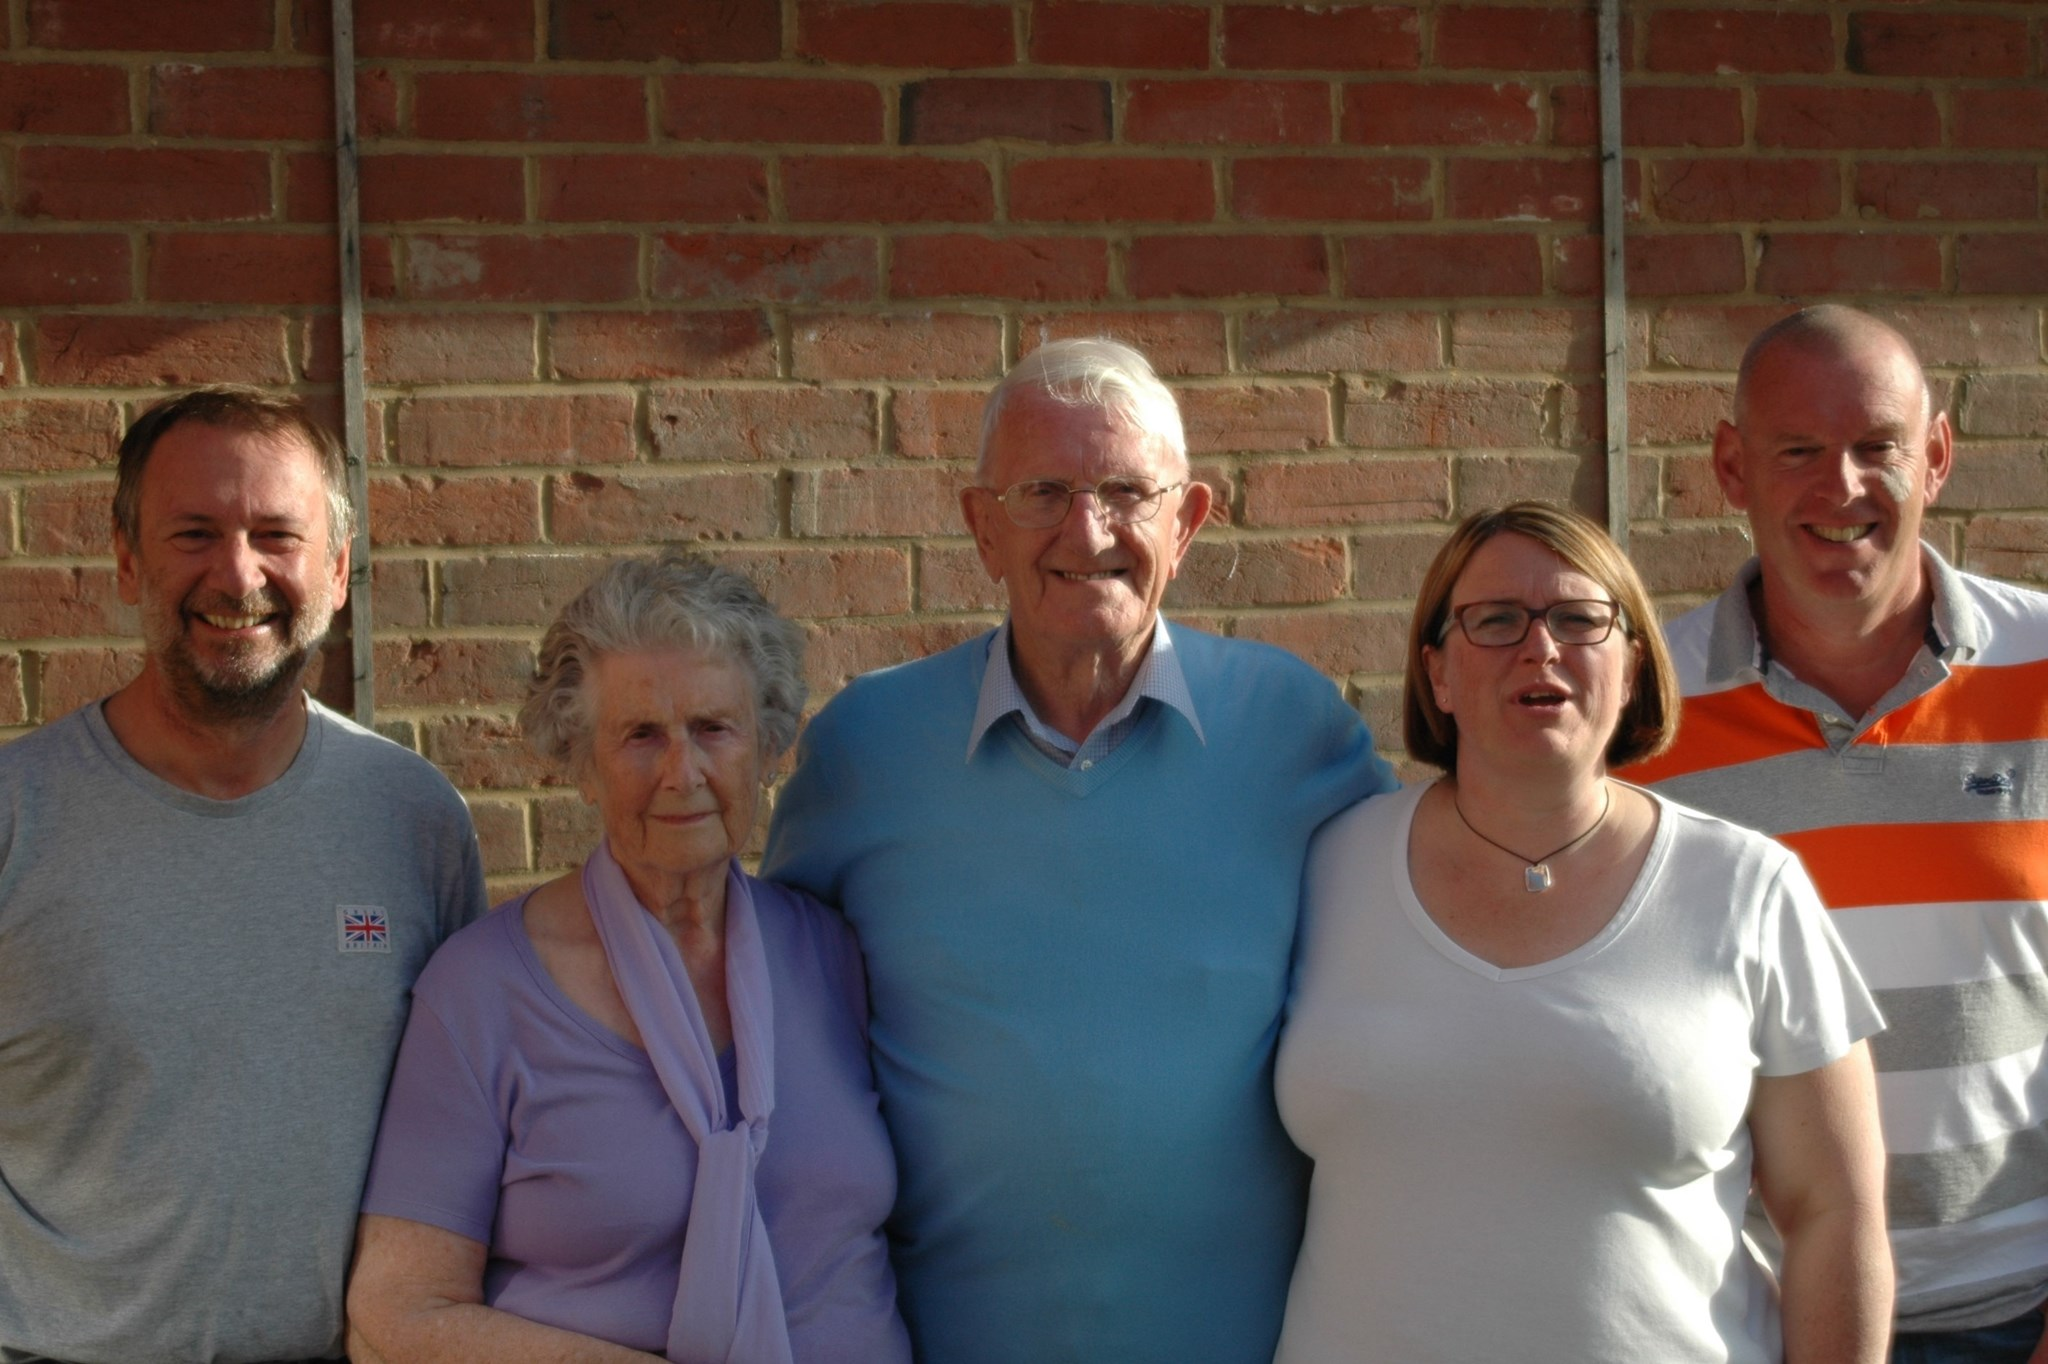 Eileen and Immediate family 2 - better of Phil, worse of Pam - sorry!